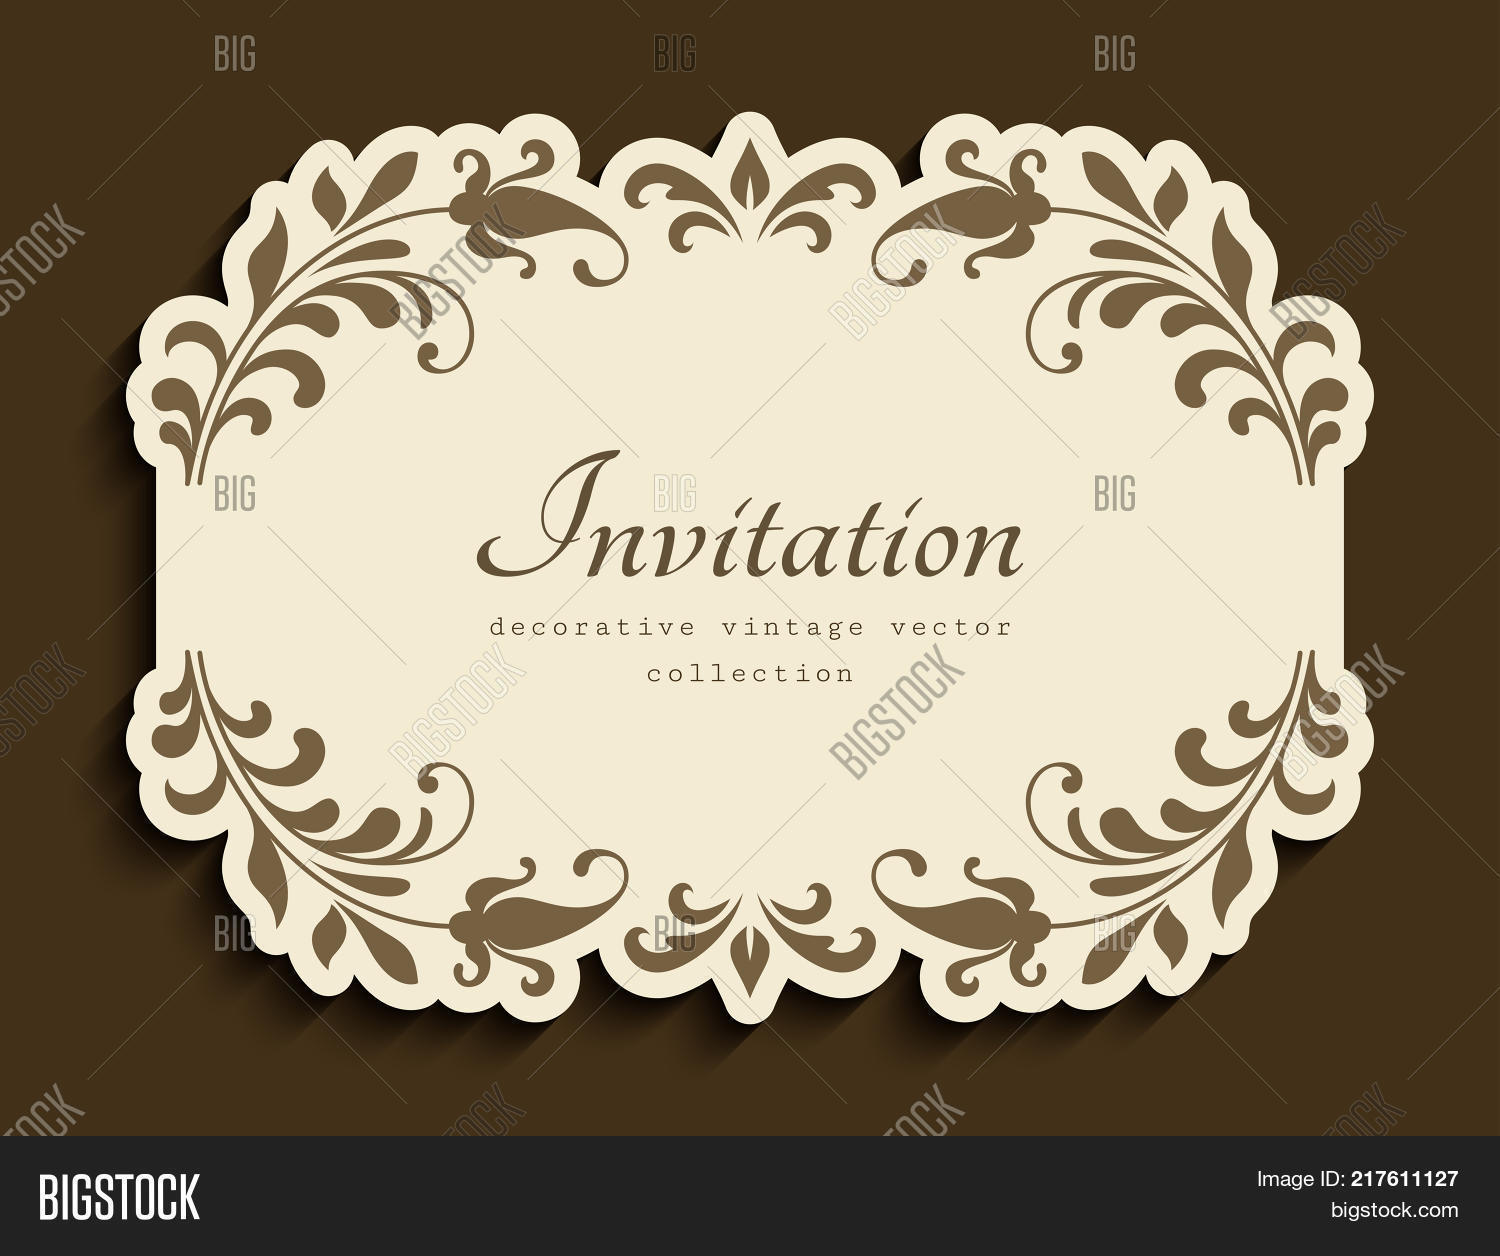 Vintage vignette vector photo free trial bigstock vintage vignette with floral decoration and cutout paper border vector embellishment wedding announcement or stopboris